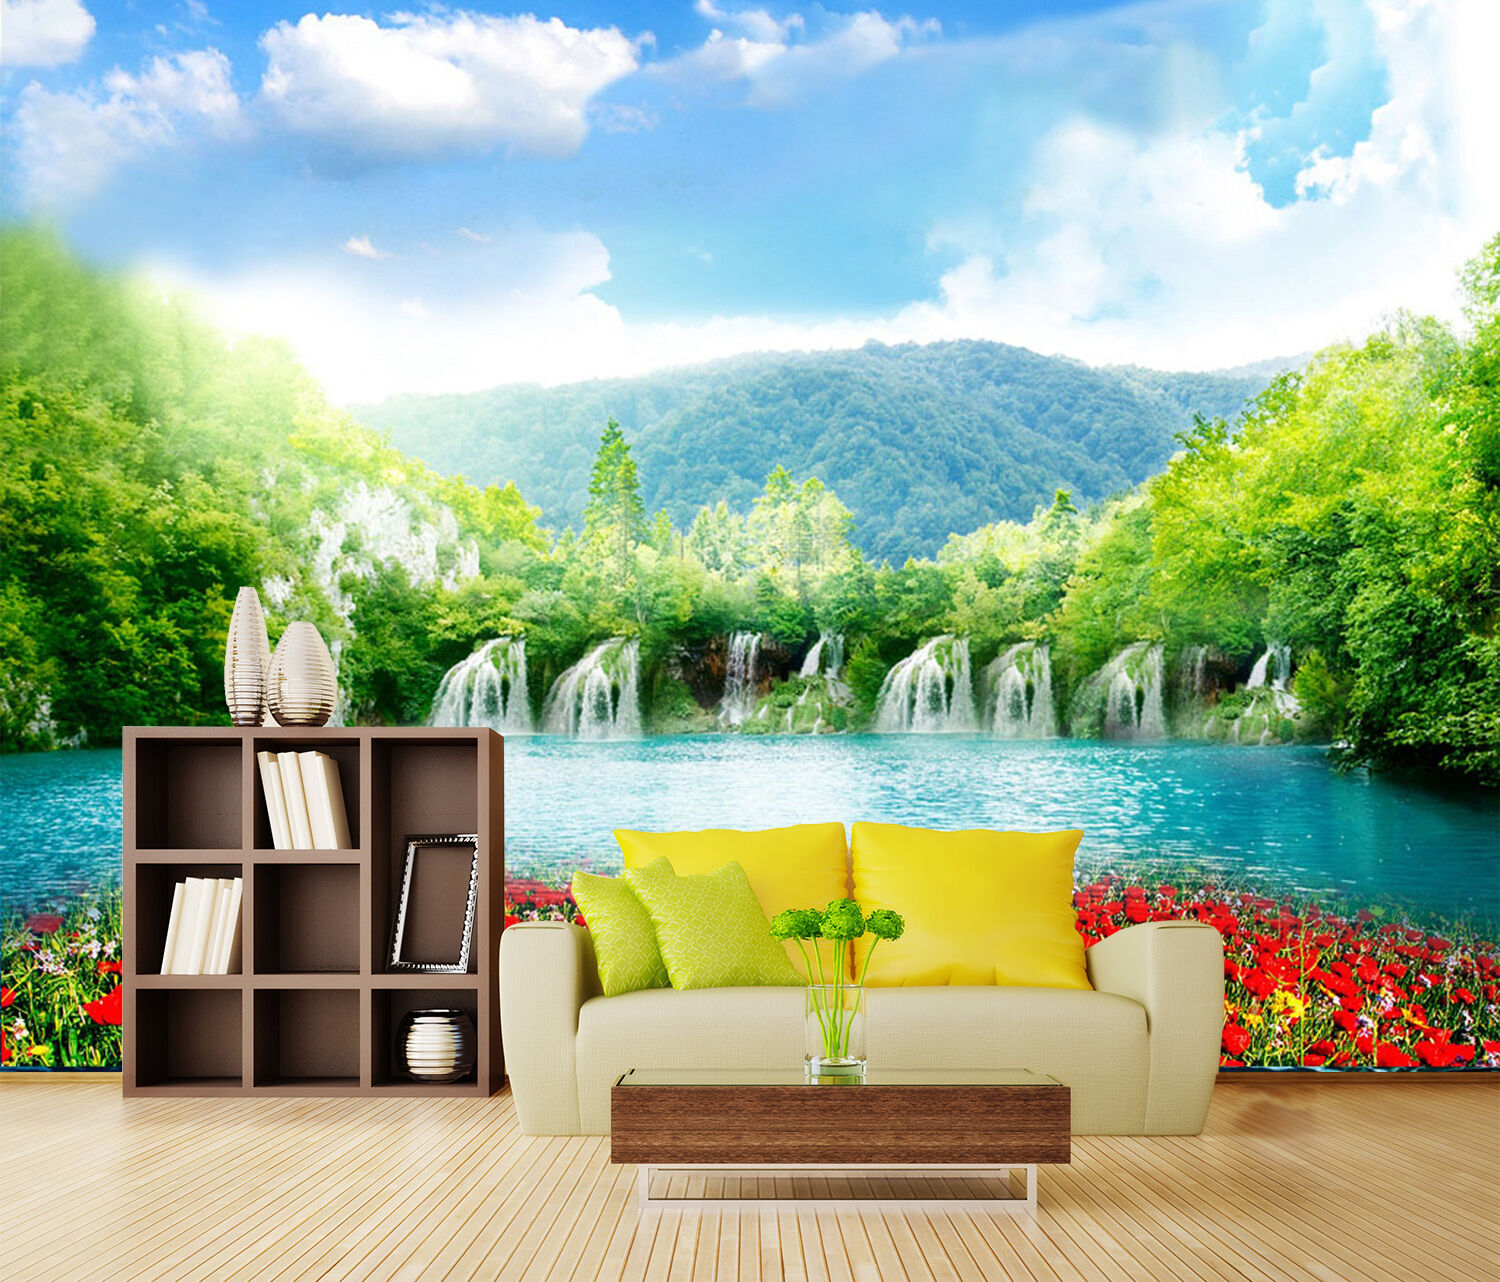 3D Lake, flowers hills 3243 Wall Paper Print Wall Decal Deco Indoor Wall Murals